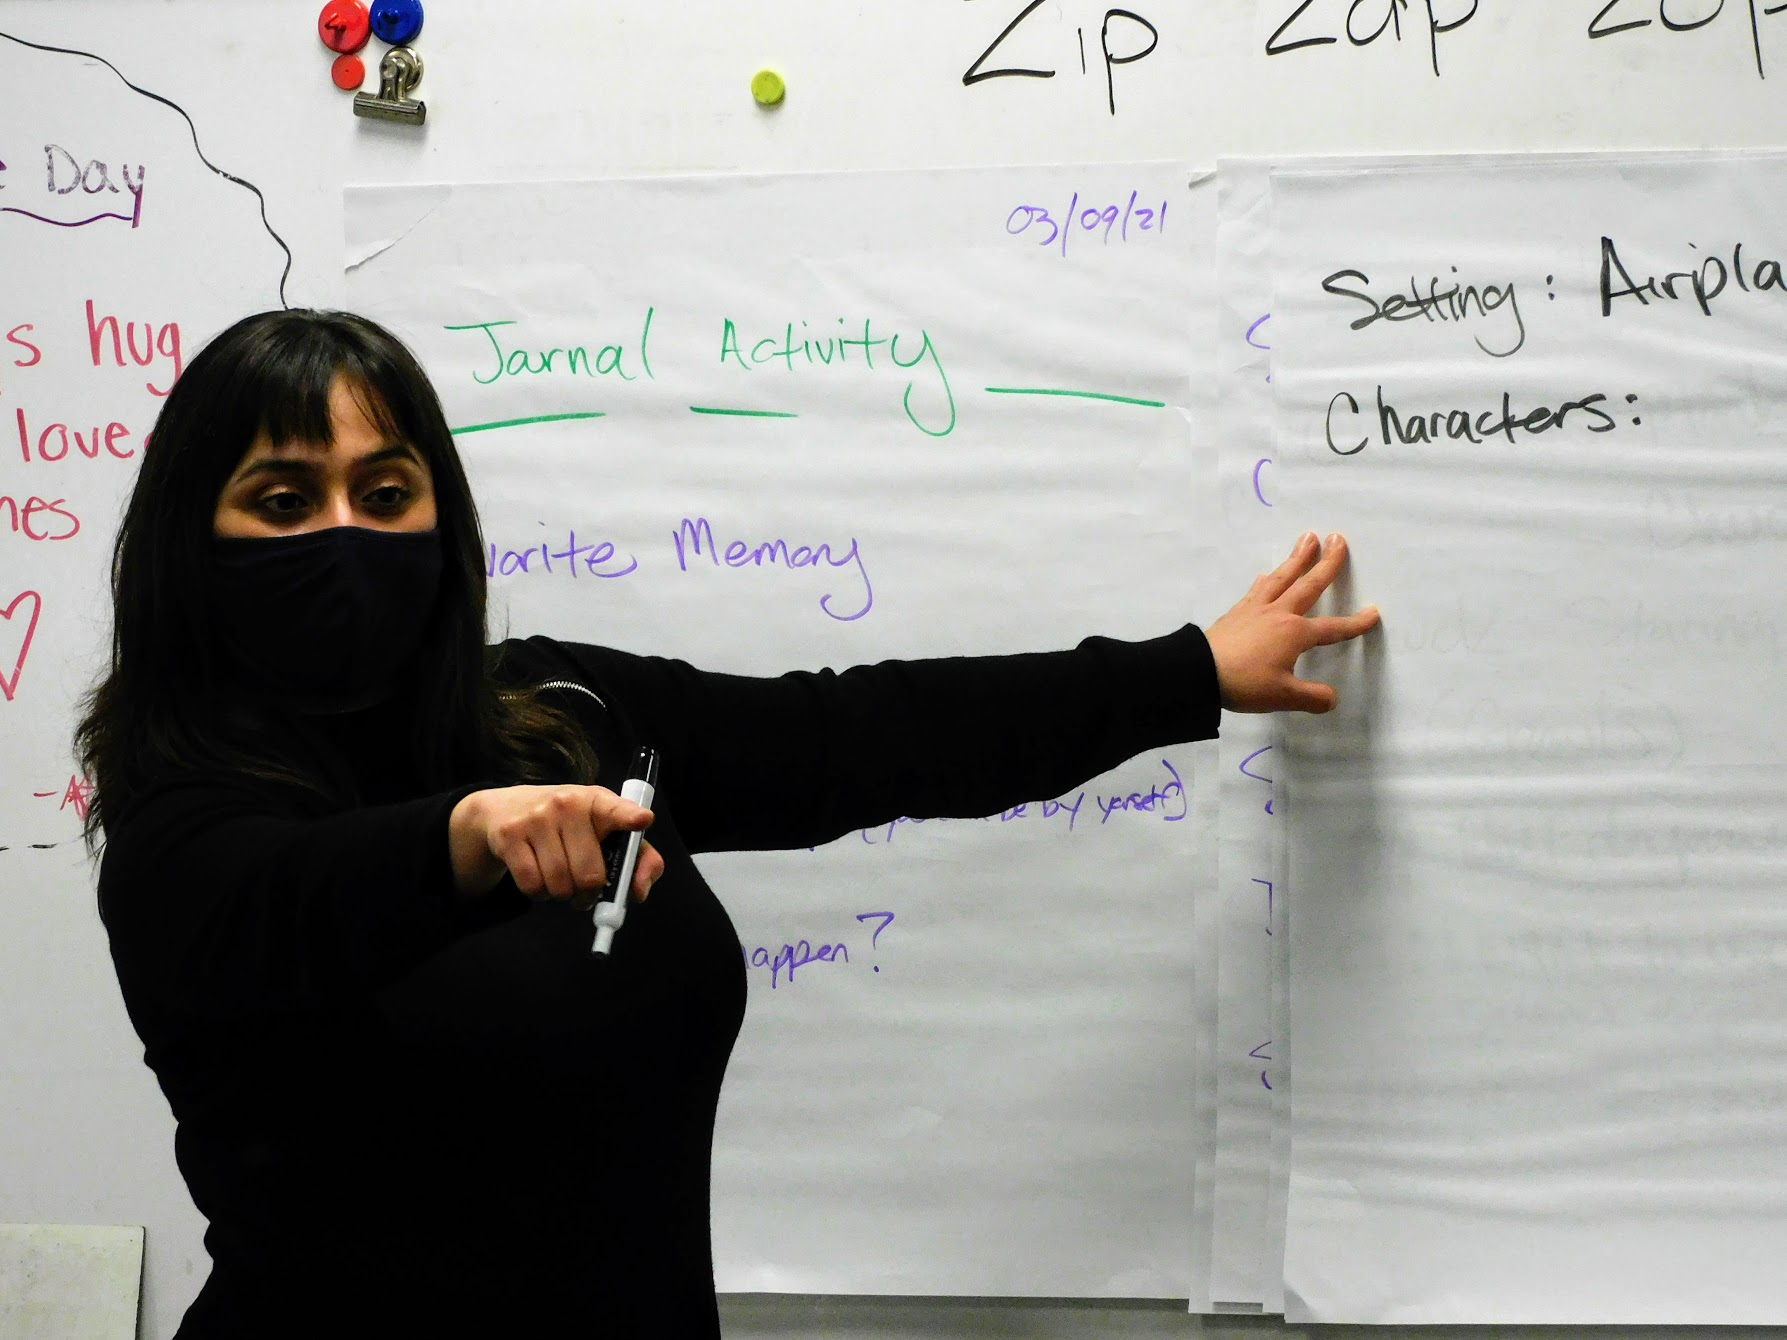 A woman in a black mask and sweater stands in front of writing on a board.